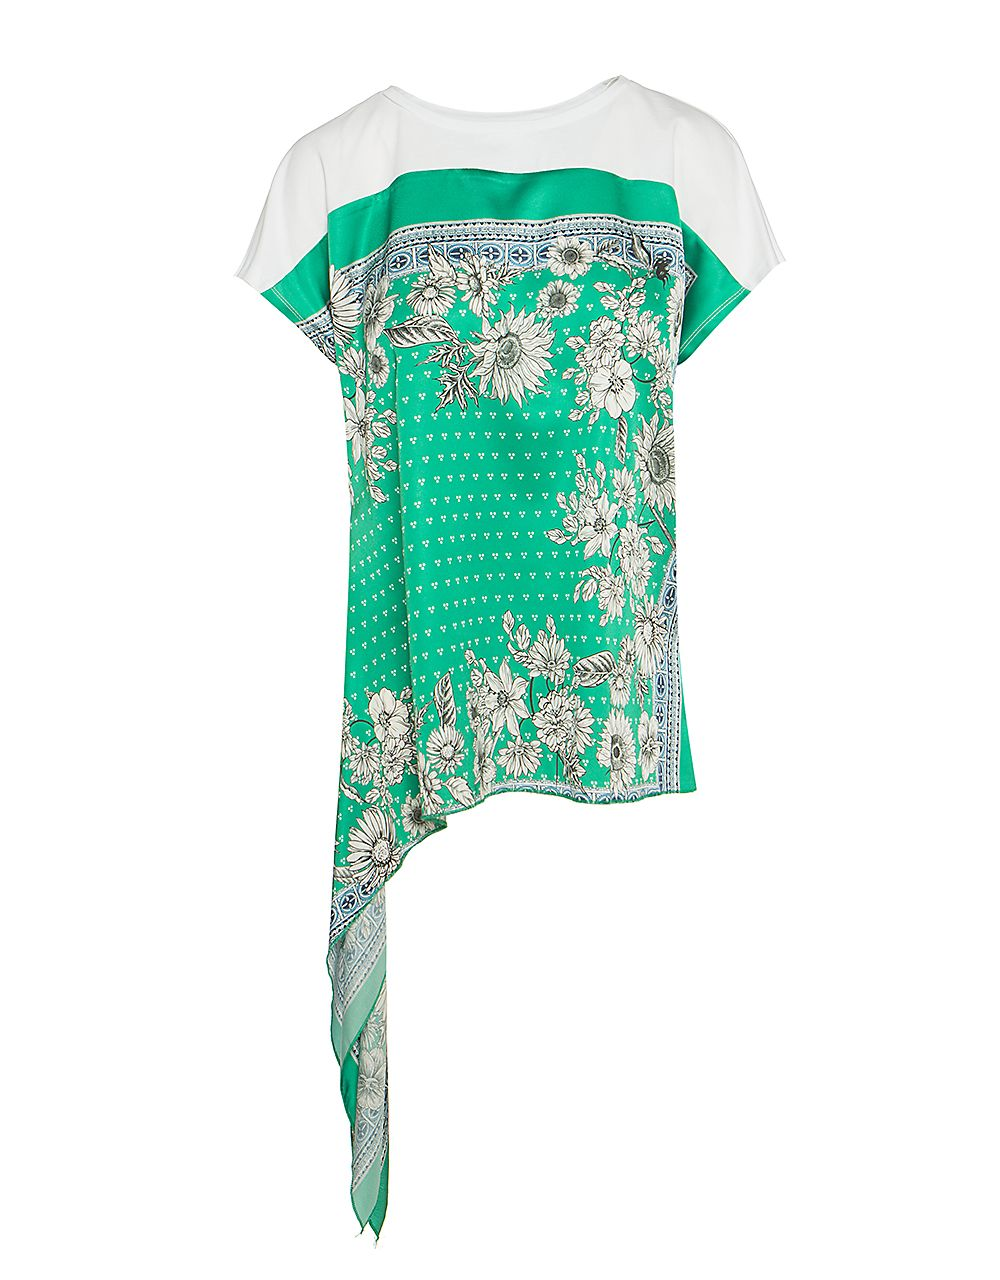 FLORAL T-SHIRT WITH SELF TIE